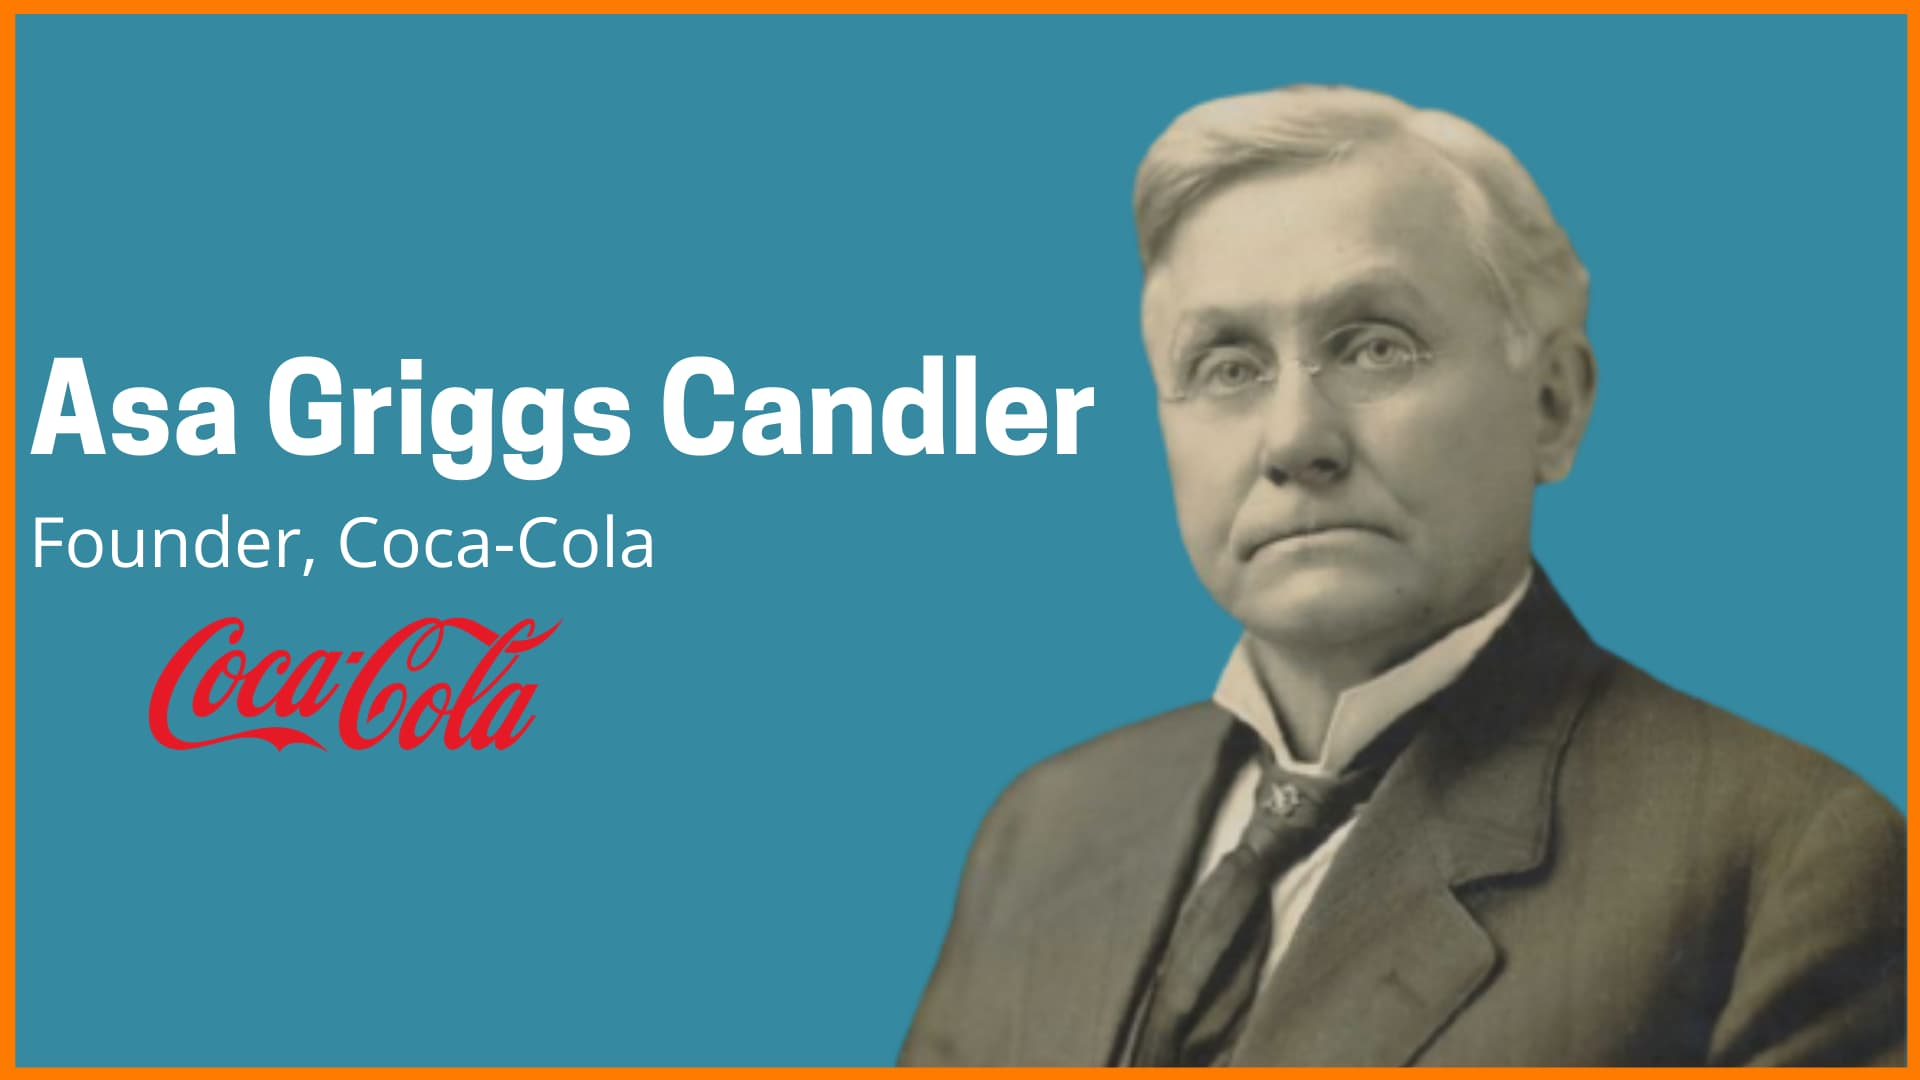 Asa Griggs Candler—Founder of The Coca-Cola Company